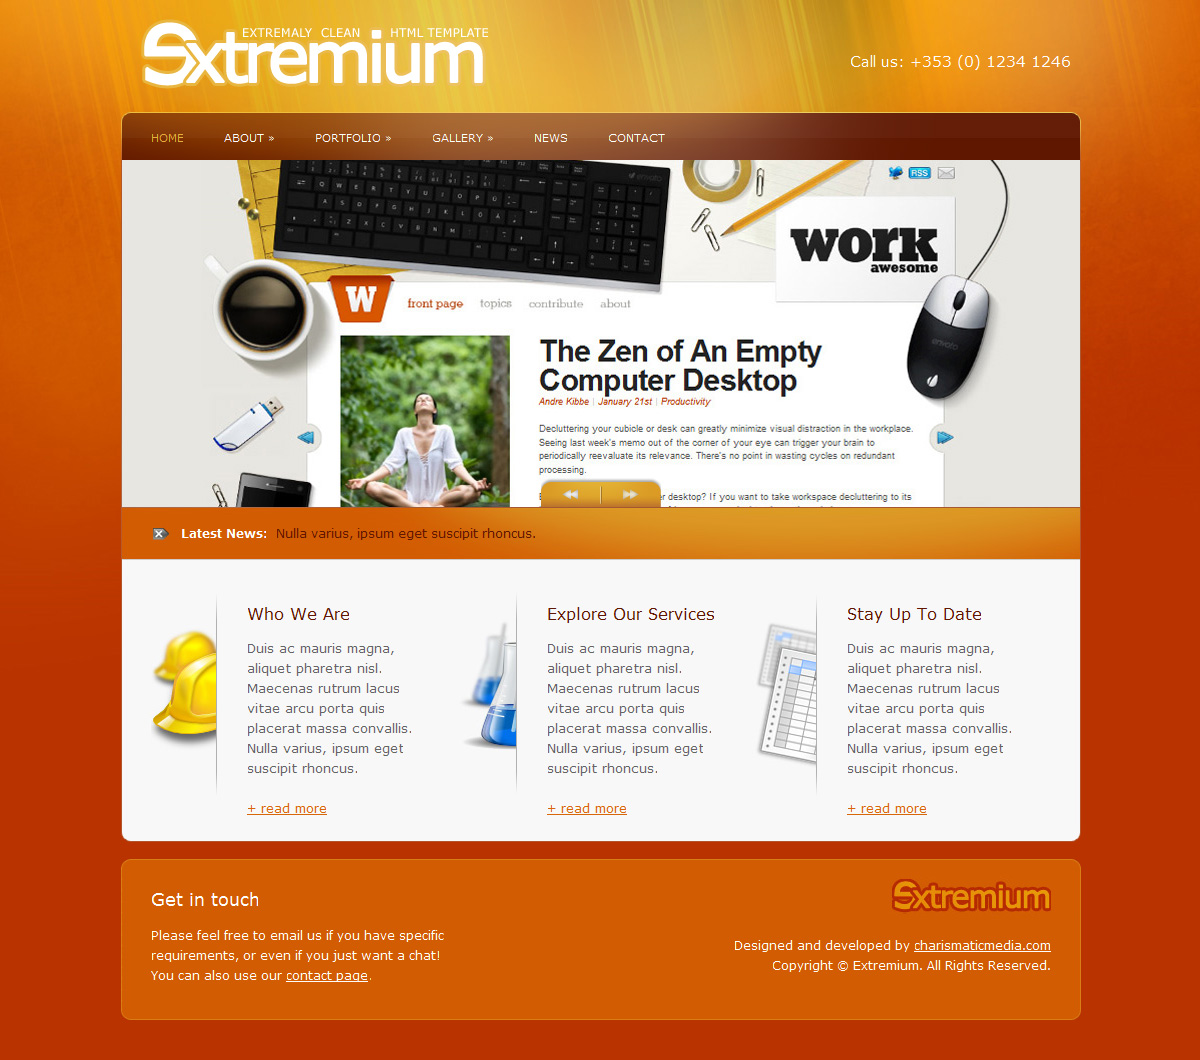 Extremium - 6 in 1 Extremely Clean HTML Template - Extremium Home Page - Orange